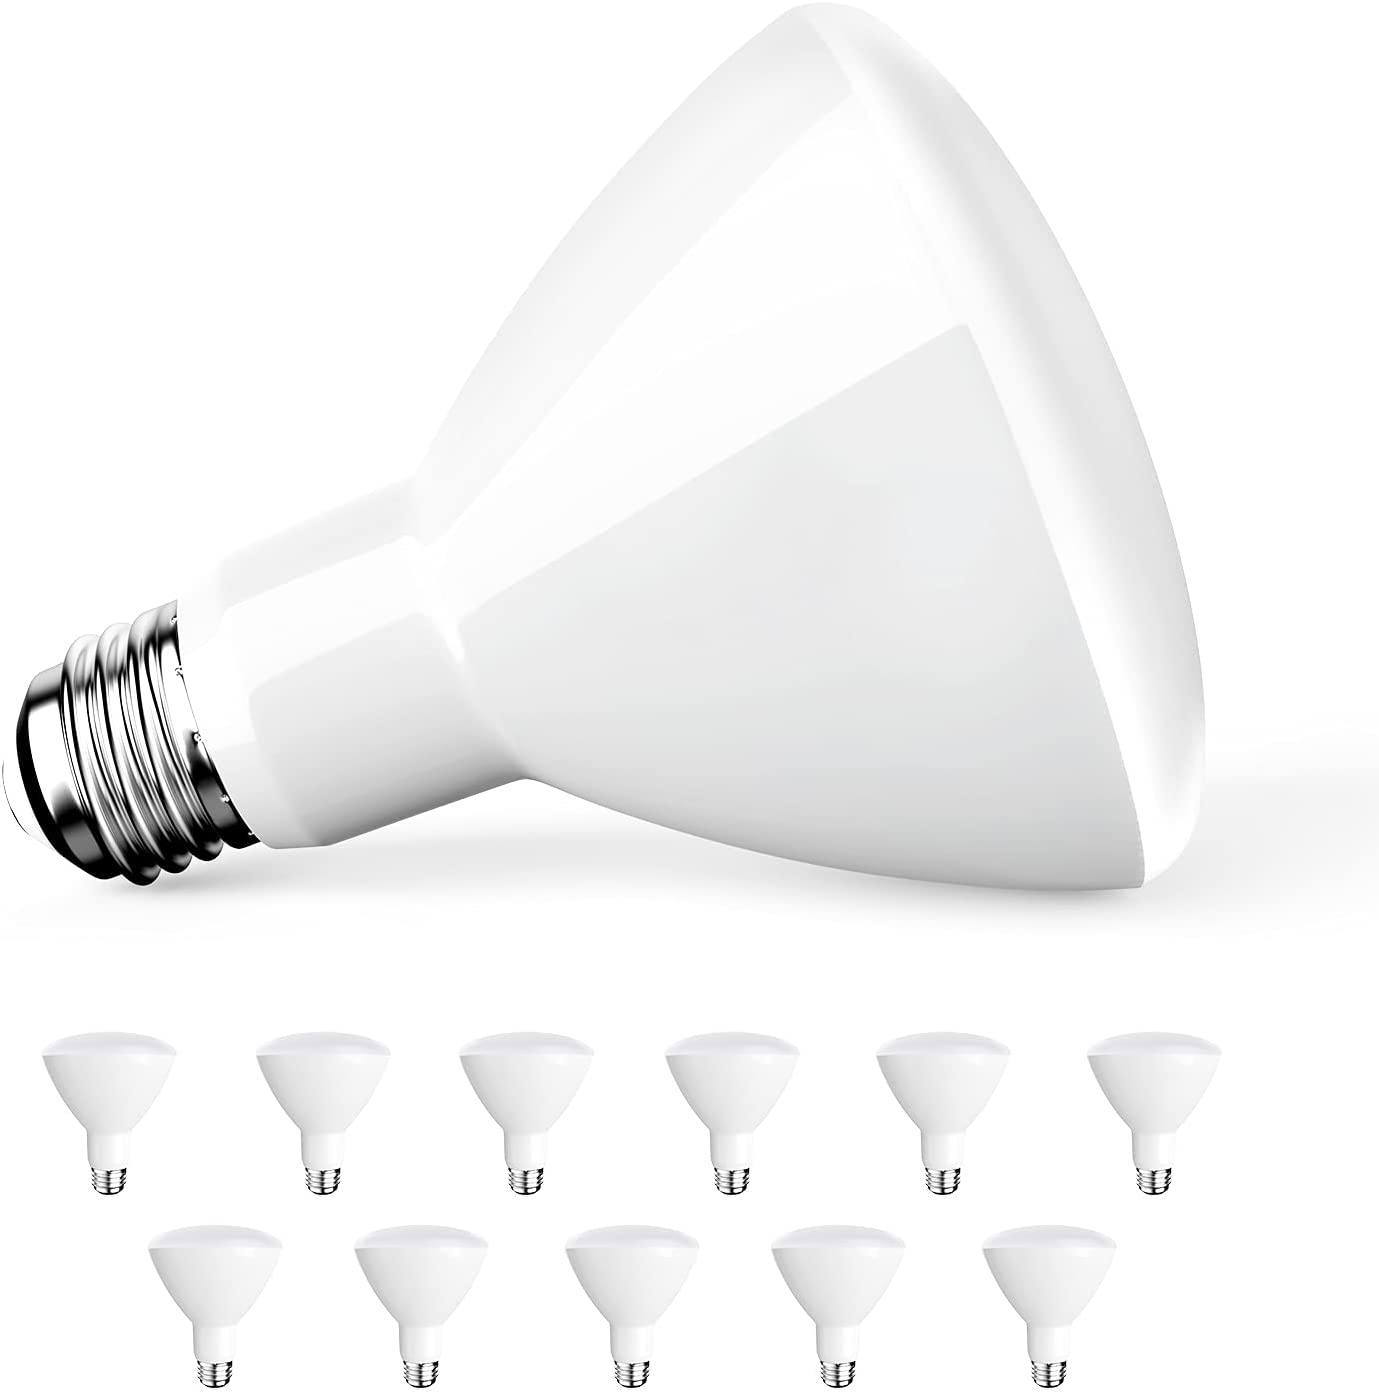 Amico 12 Pack BR30 LED Max 89% OFF Bulb 9W=65W White Ranking TOP9 LM 650 2700K E2 Soft